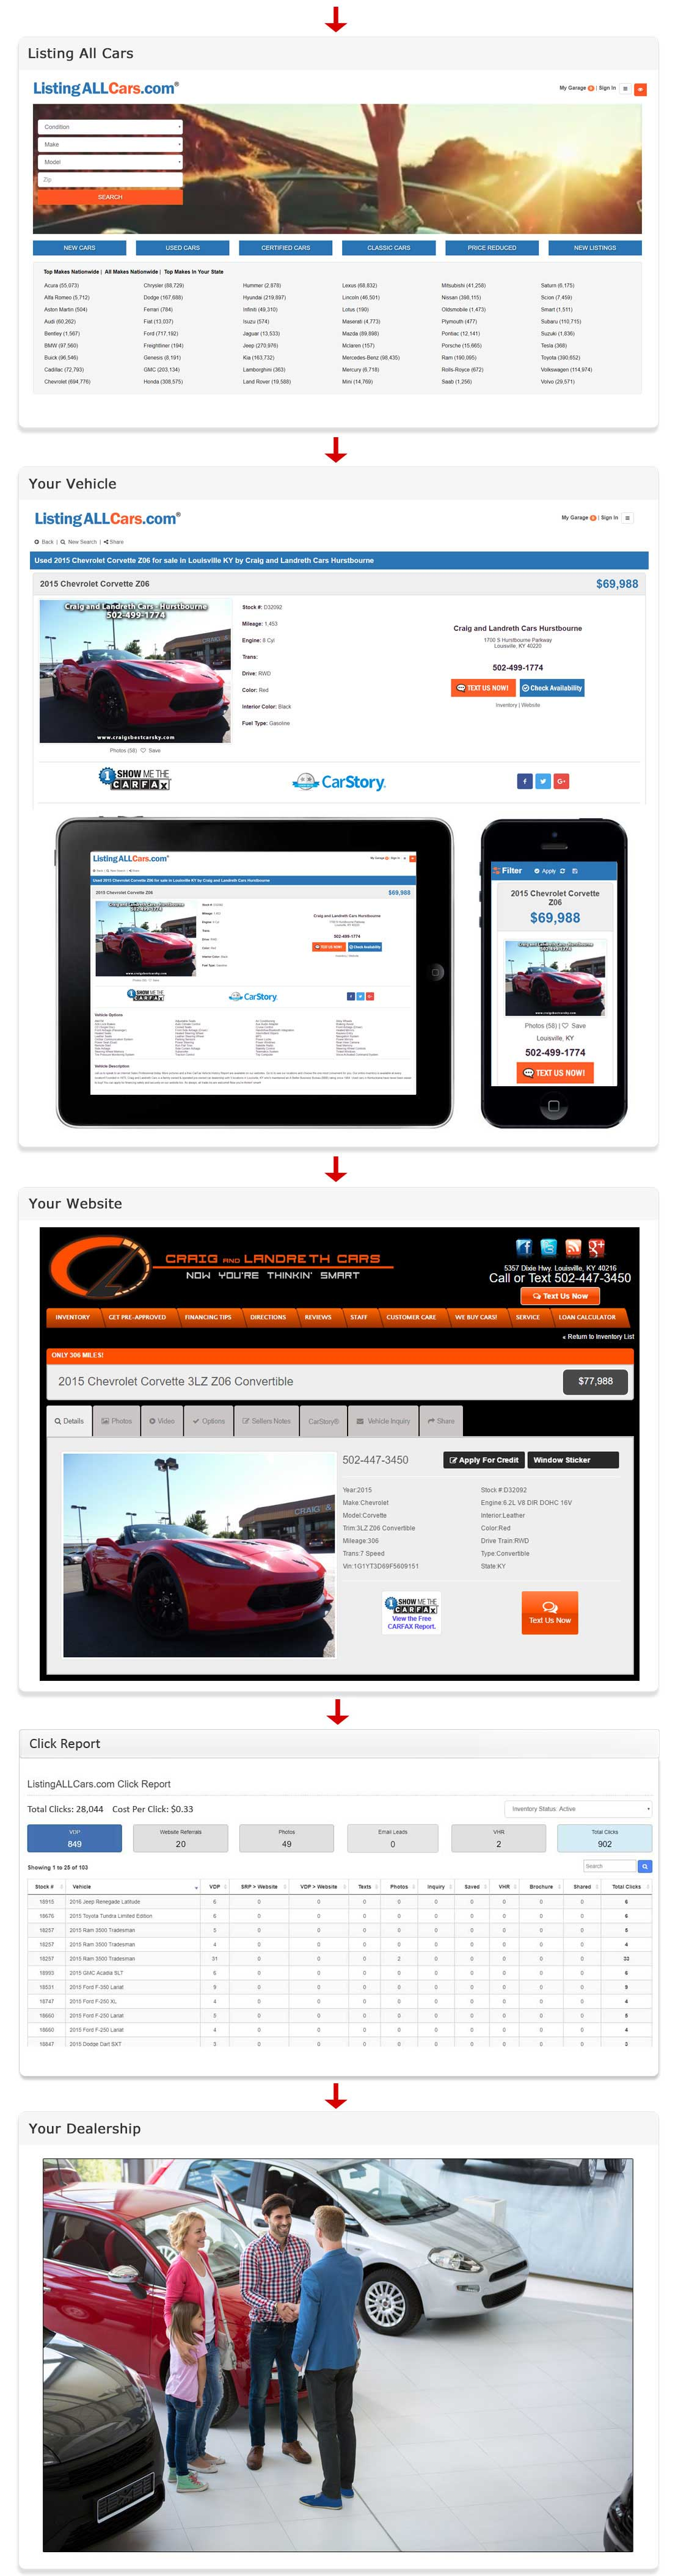 Listing All Cars Lead Generation for Car Dealers